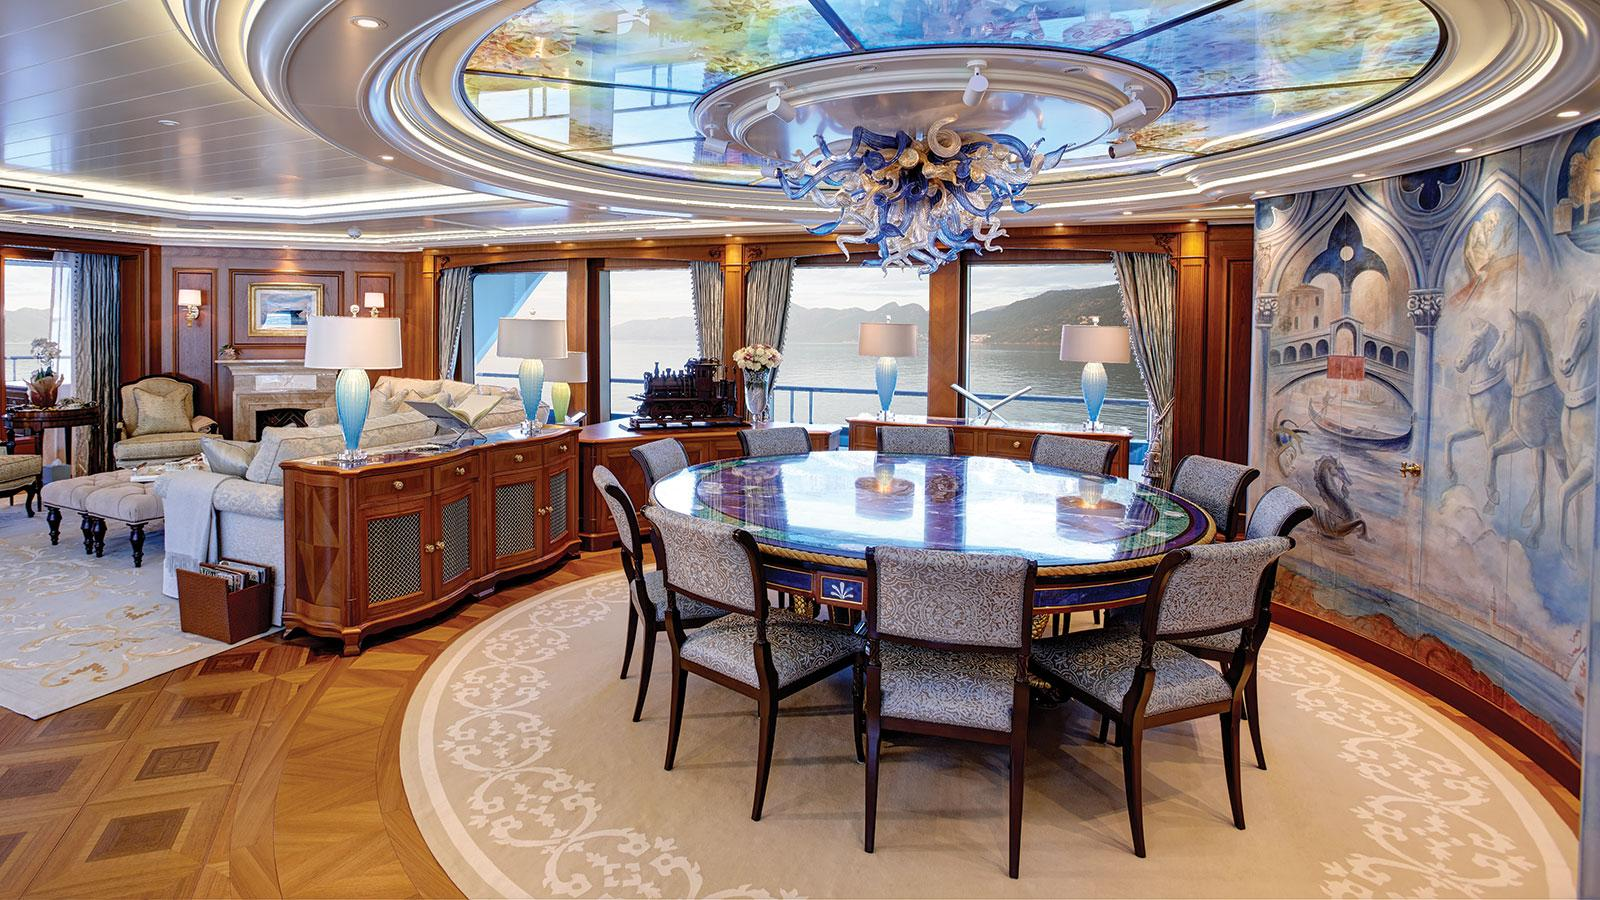 Here are 3 of the most spectacular bathrooms in super yachts